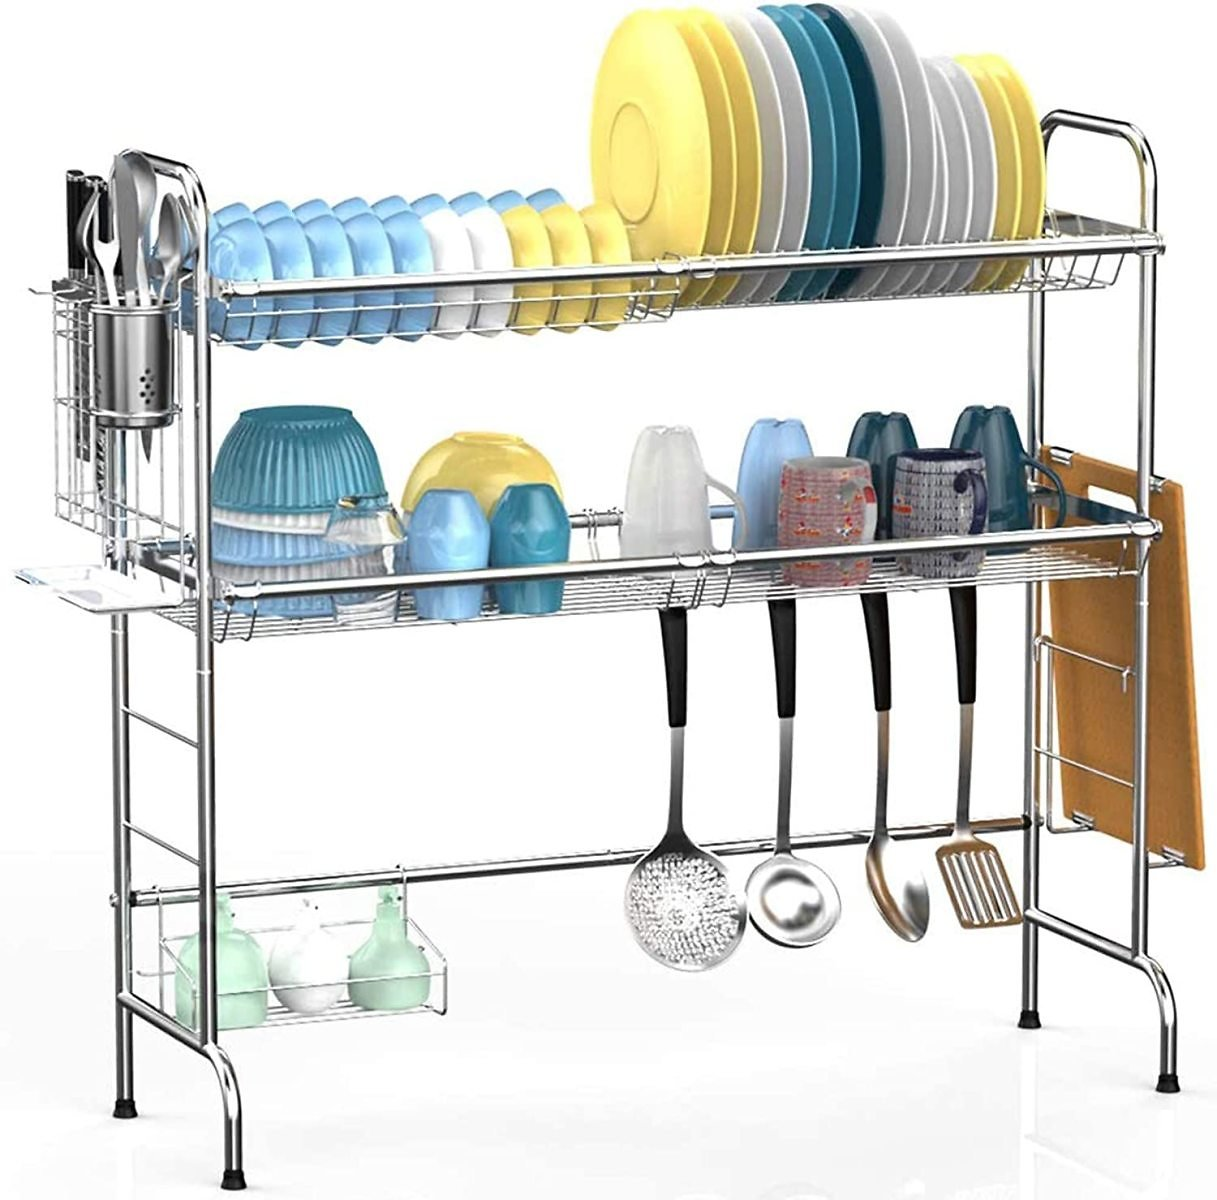 Over The Sink Dish Drying Rack, Veckle 2 Tier Dish Rack Easy Install Dish Drainer Non-Slip Stainless Steel Dish Dryer, Utensil H